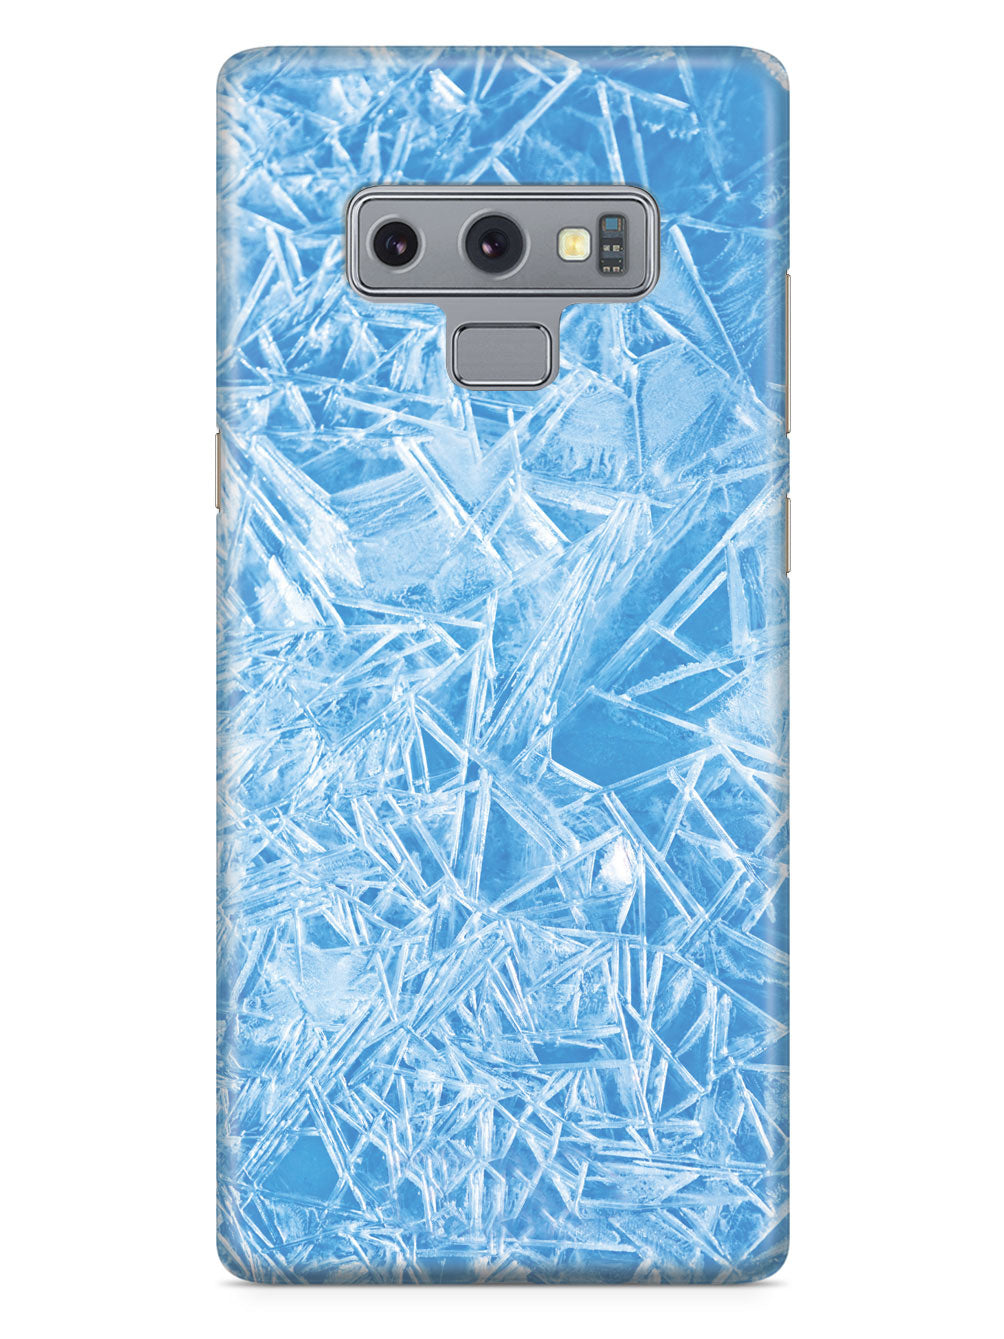 Cracked Ice Broken Case